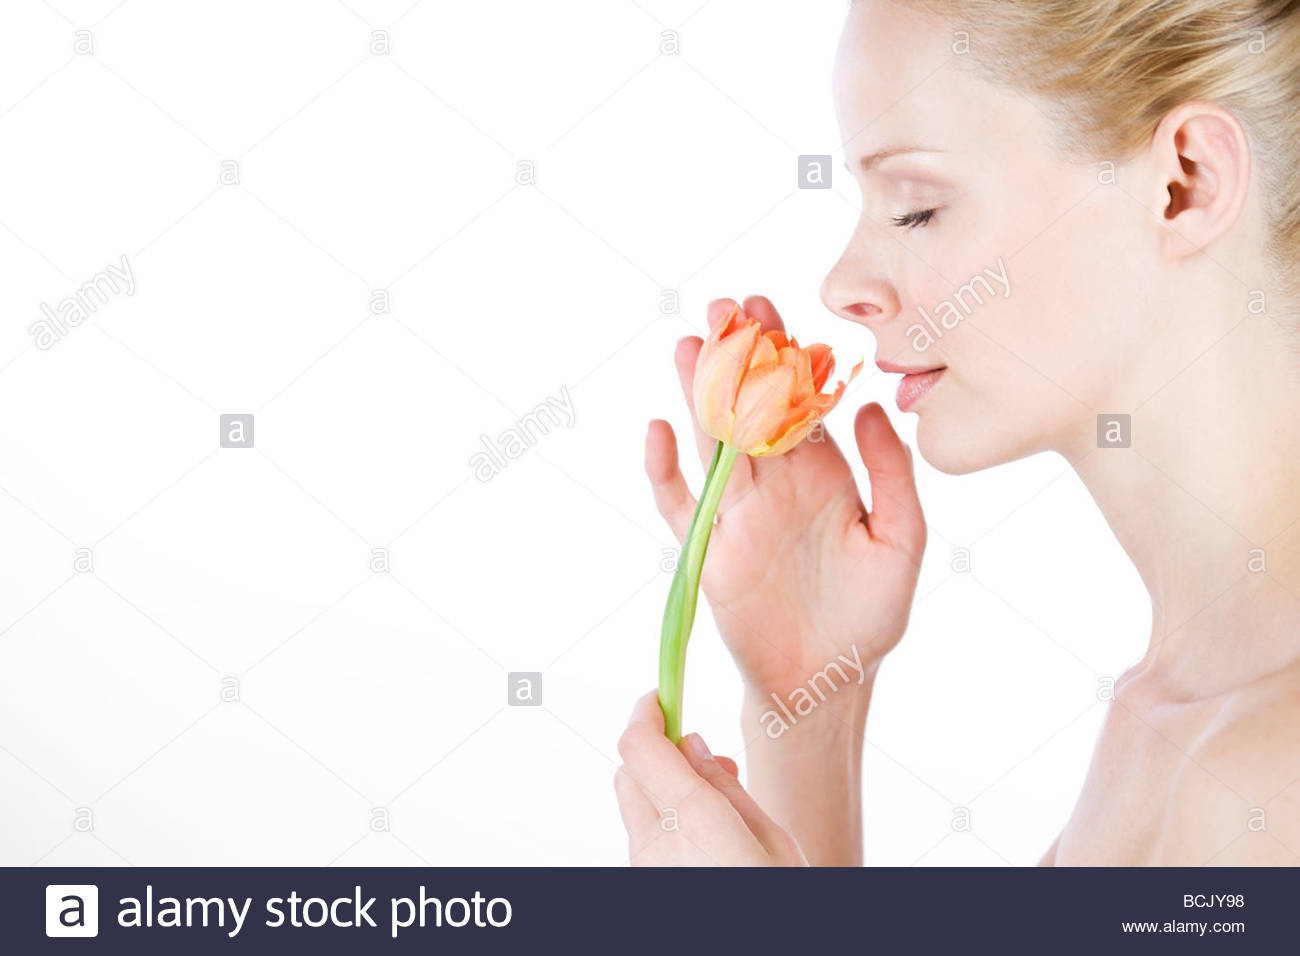 A young woman smelling an orange tulip, side view Stock Photo